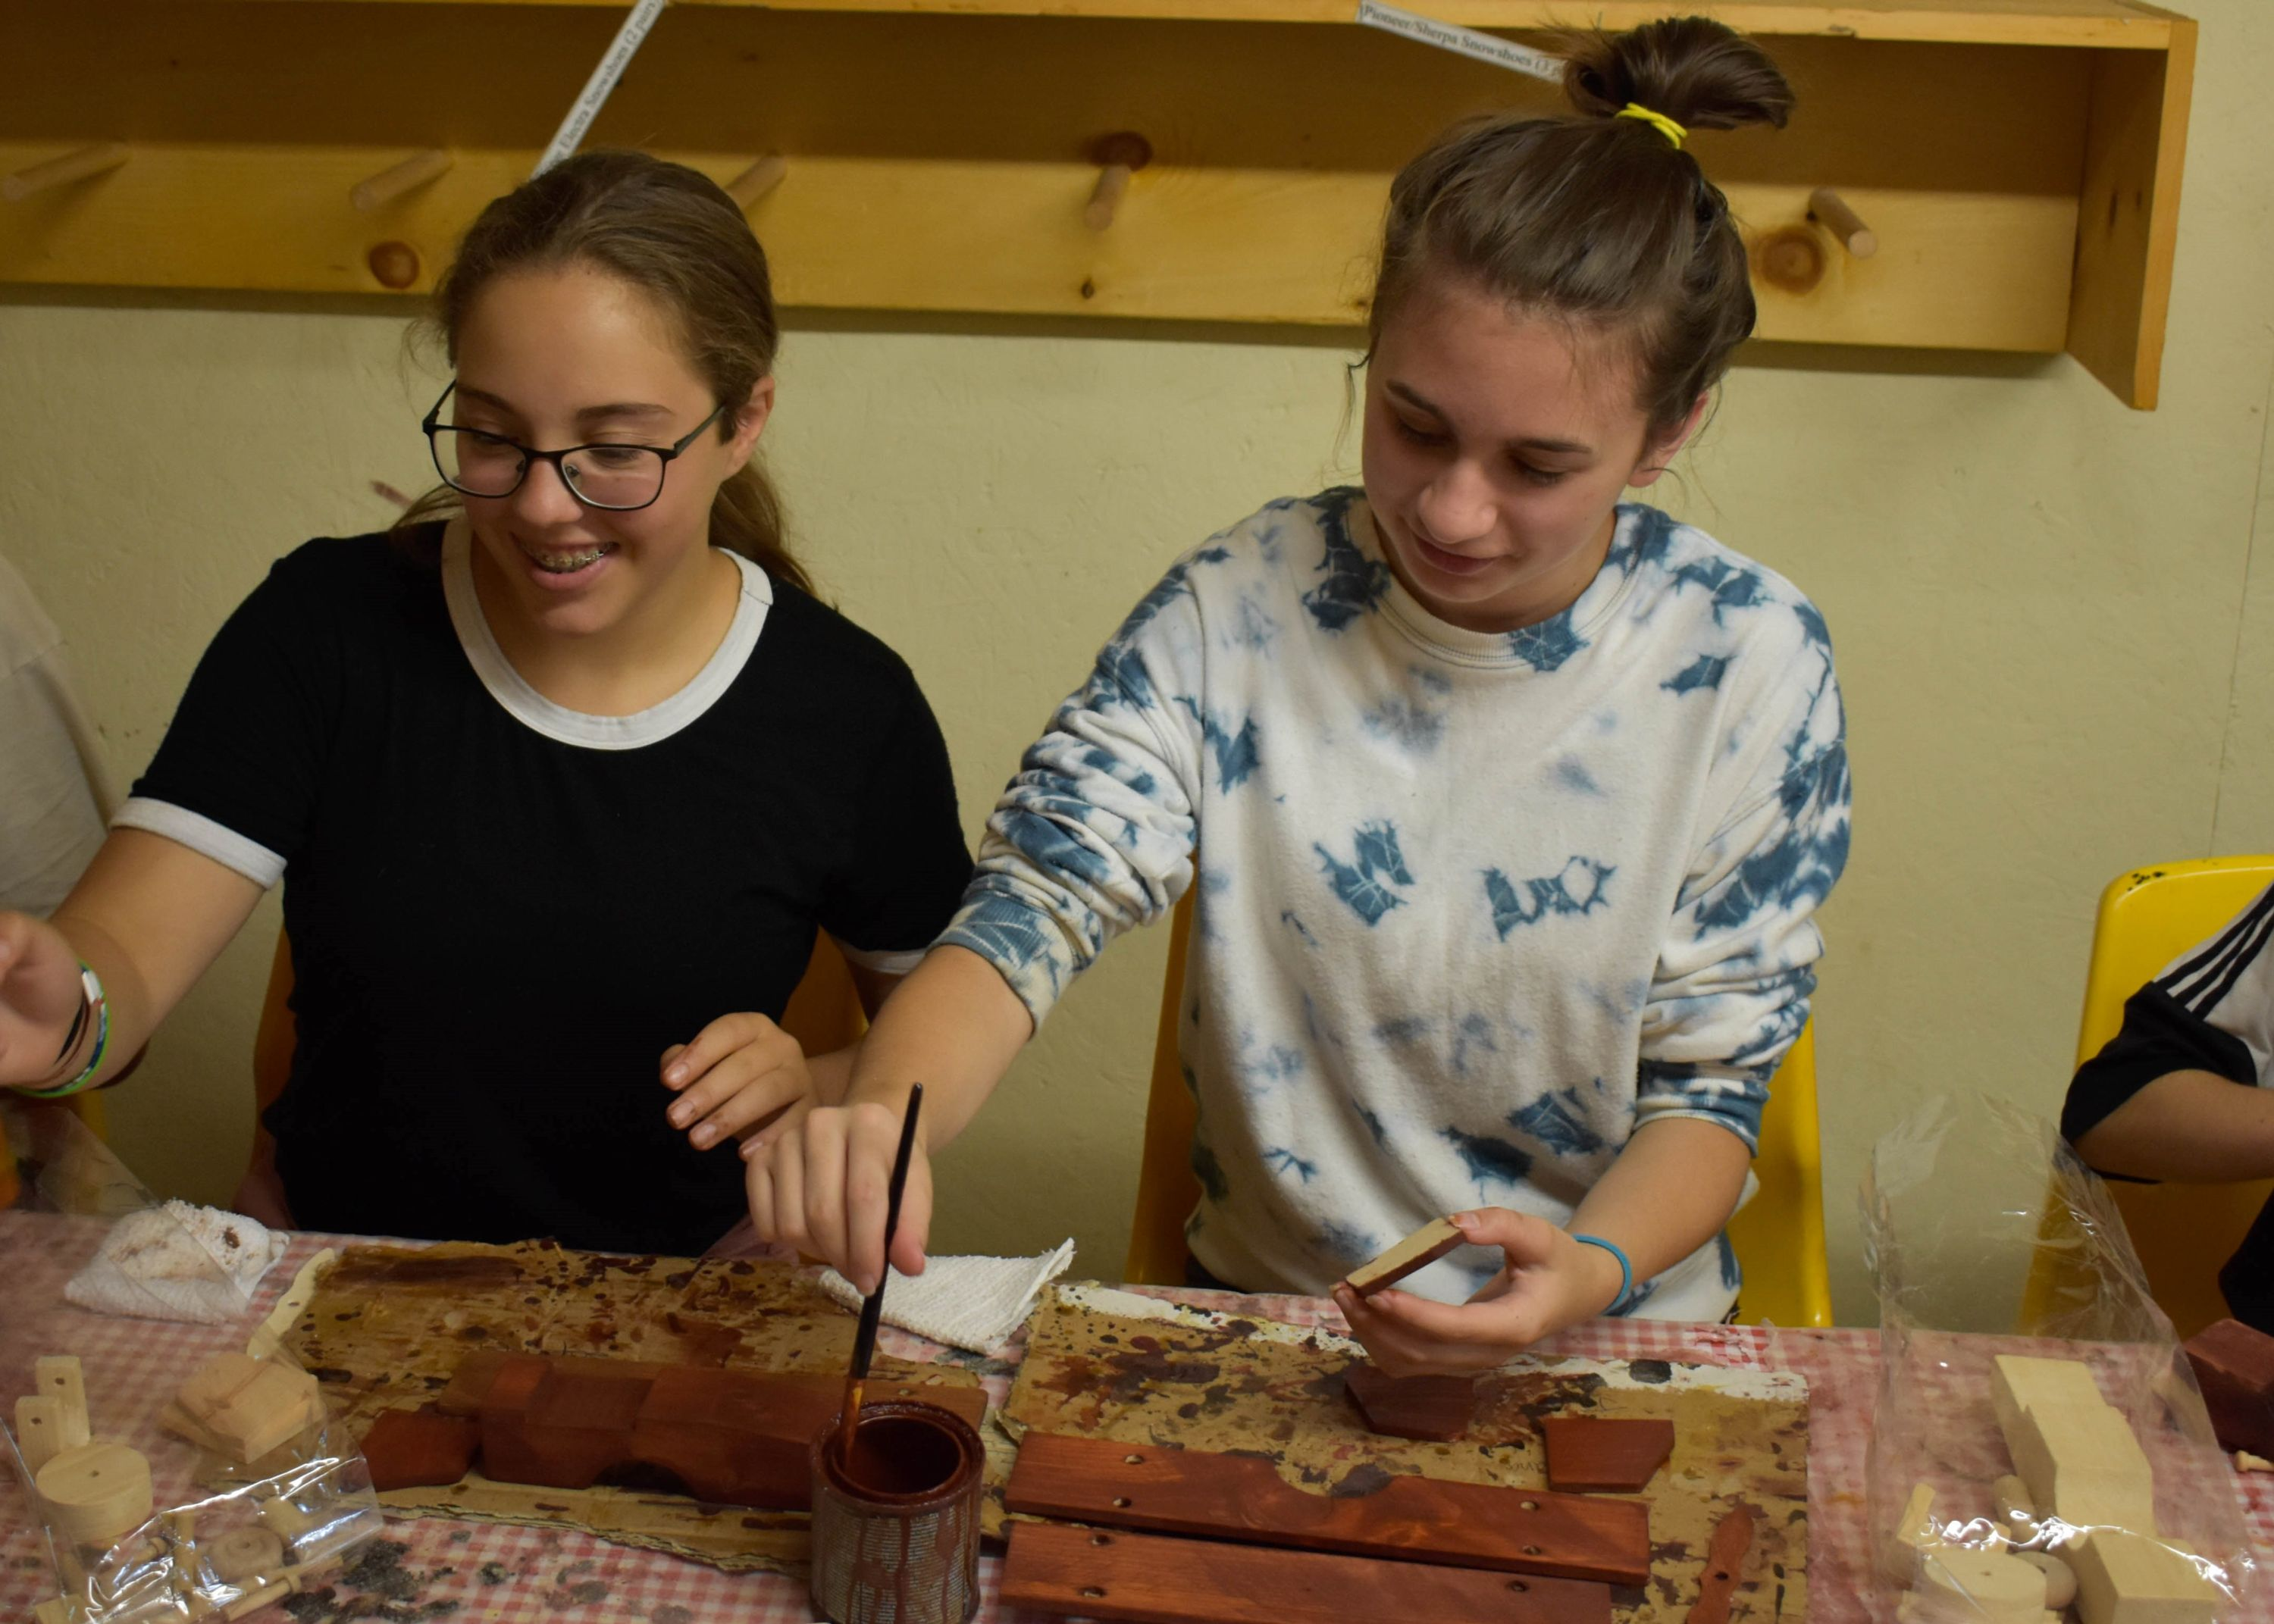 campers working on their woodworking project at christian adventure summer camp in haliburton, ontario